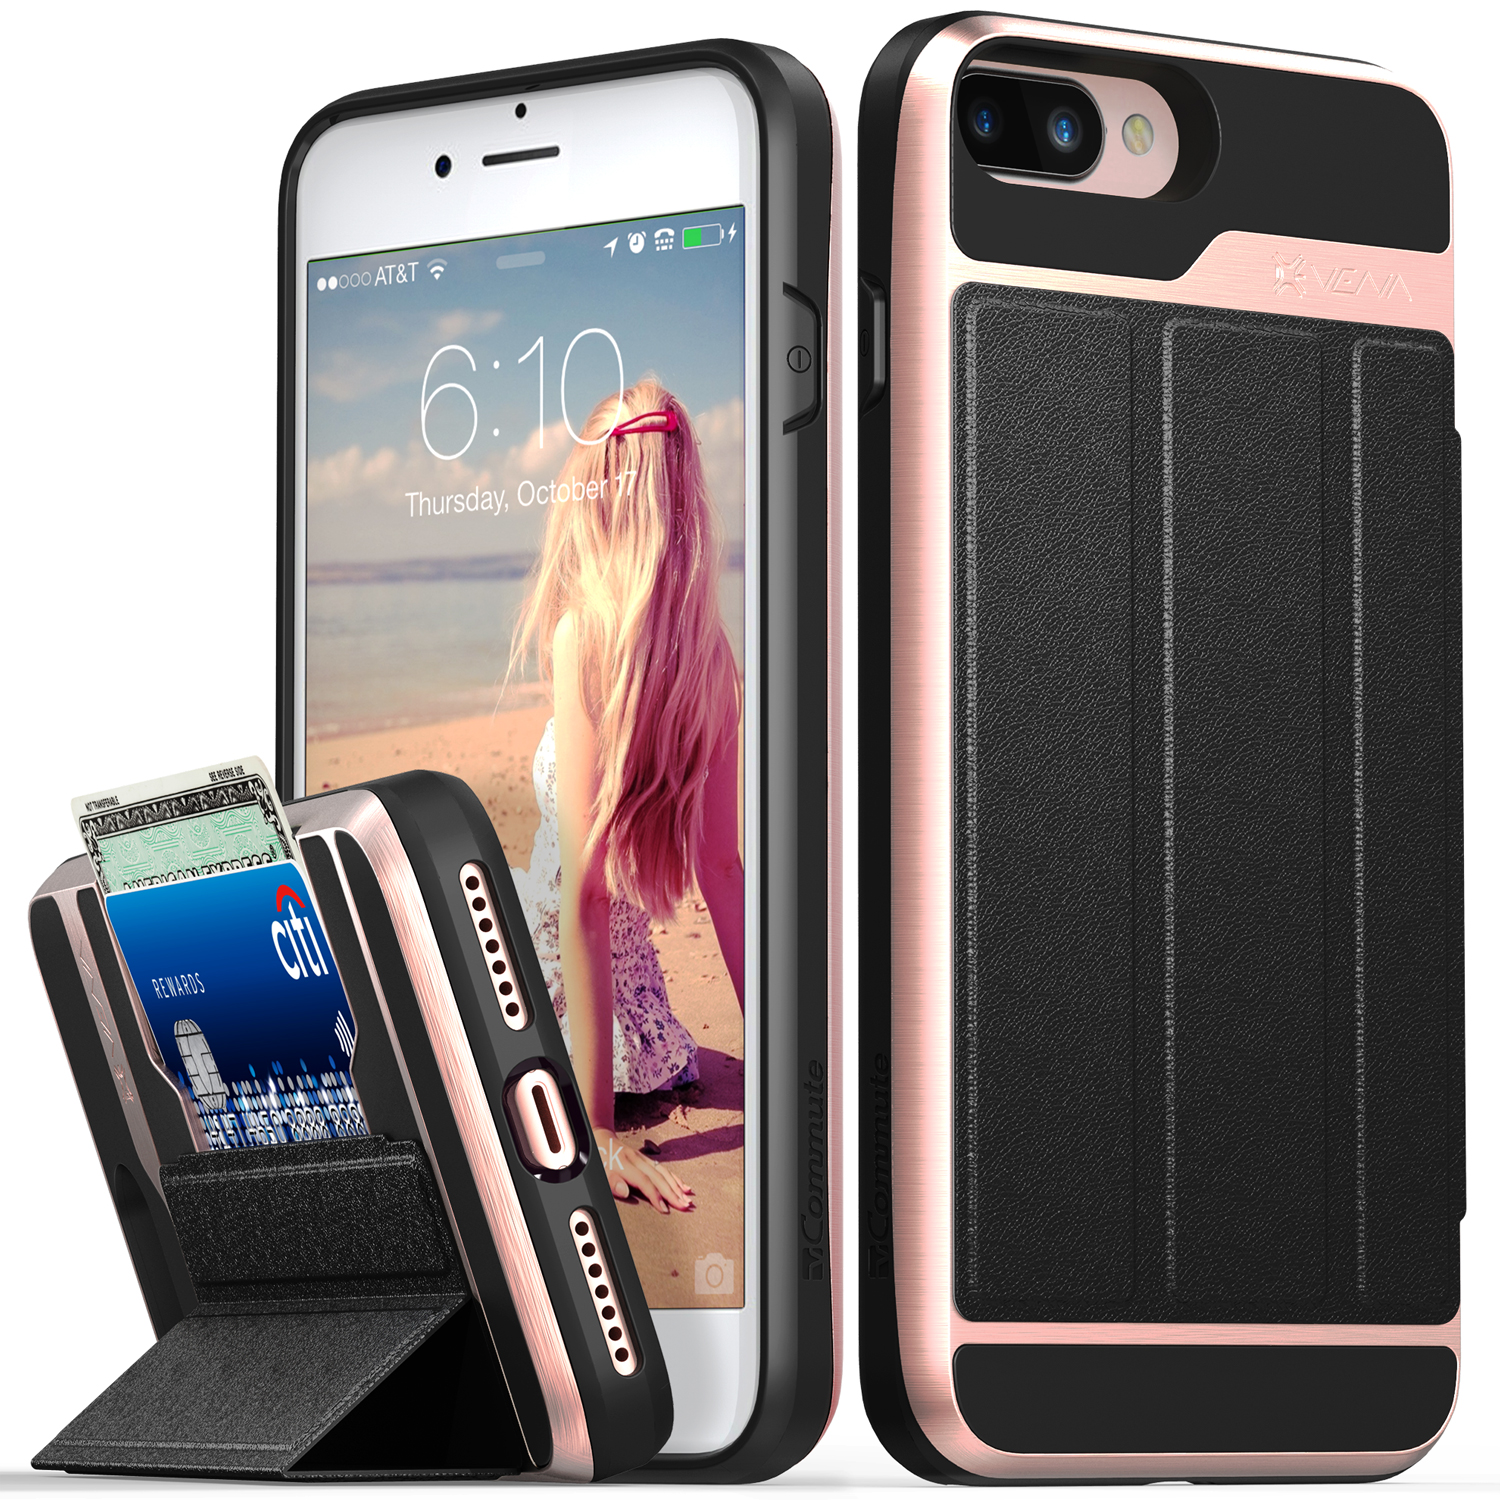 iPhone 8 Plus Wallet Case, iPhone 7 Plus Wallet Case, Vena [vCommute][Military Grade Drop Protection] Flip Leather Cover Card Slot w/ KickStand for Apple iPhone 8 Plus / 7 Plus (Rose Gold / Black)